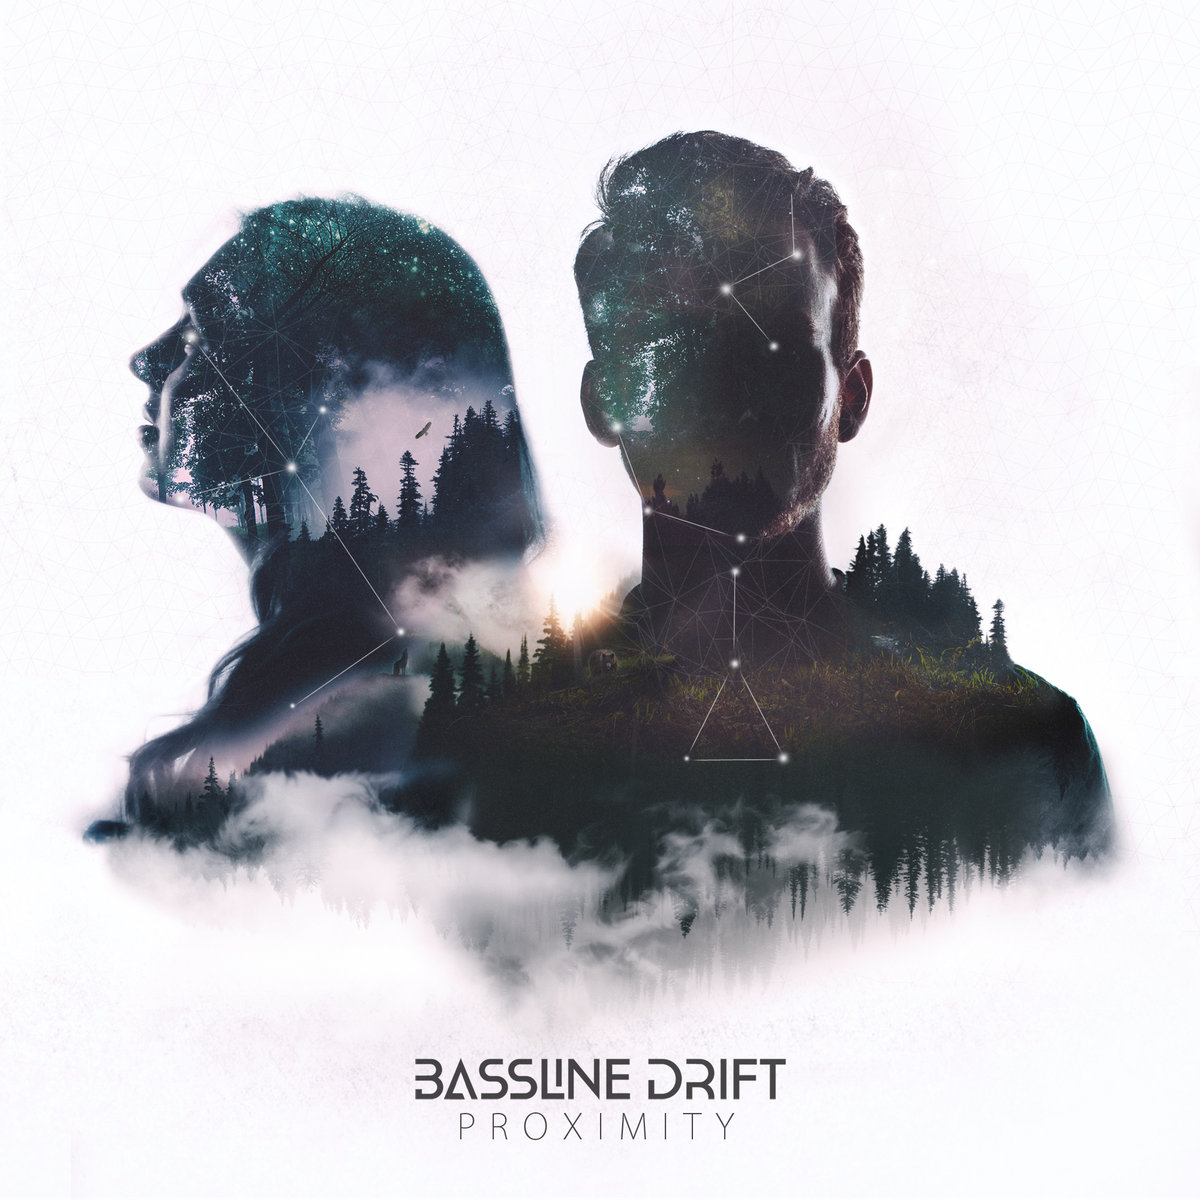 Bassline Drift - Our Own Home @ 'Proximity' album (downtempo, dubstep)